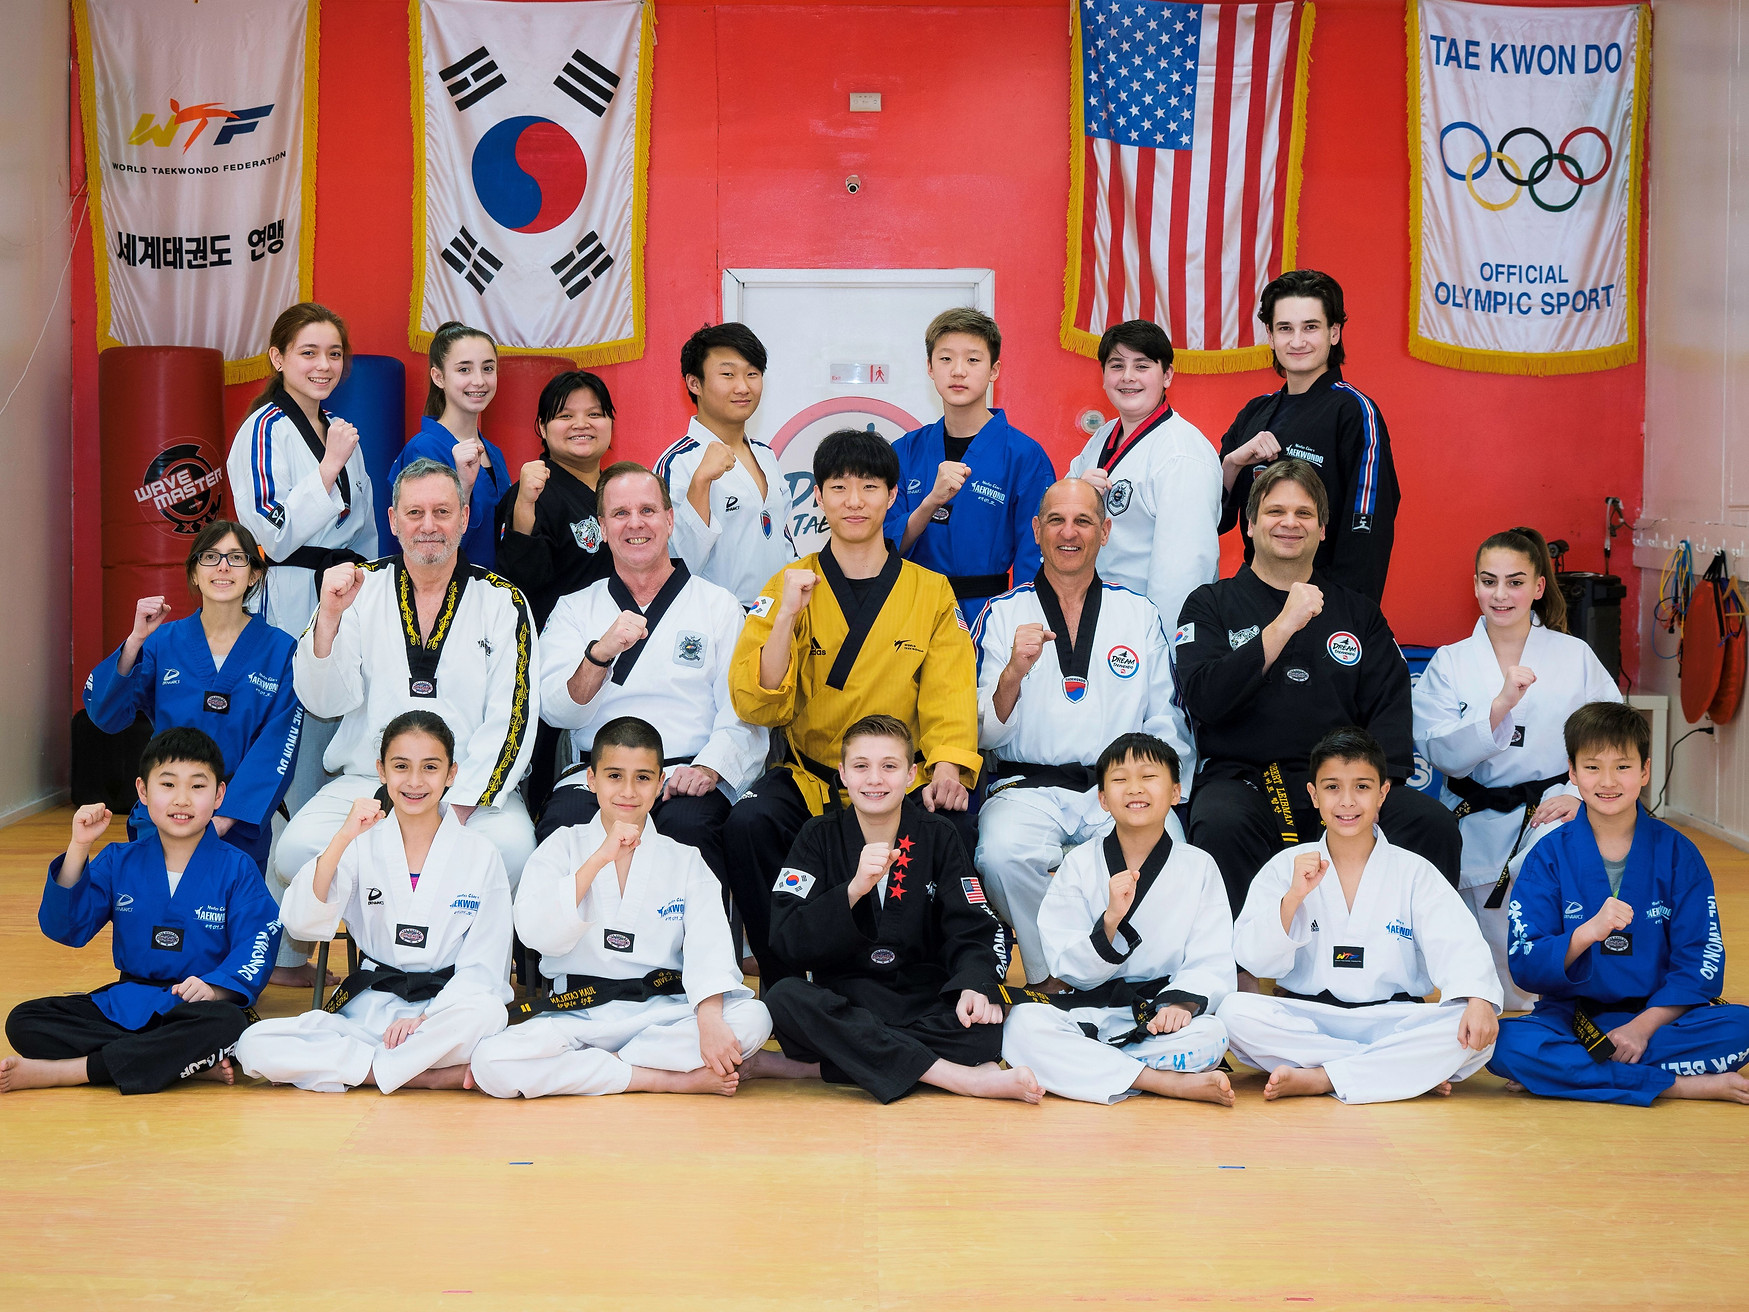 Black Belt Picture.jpg